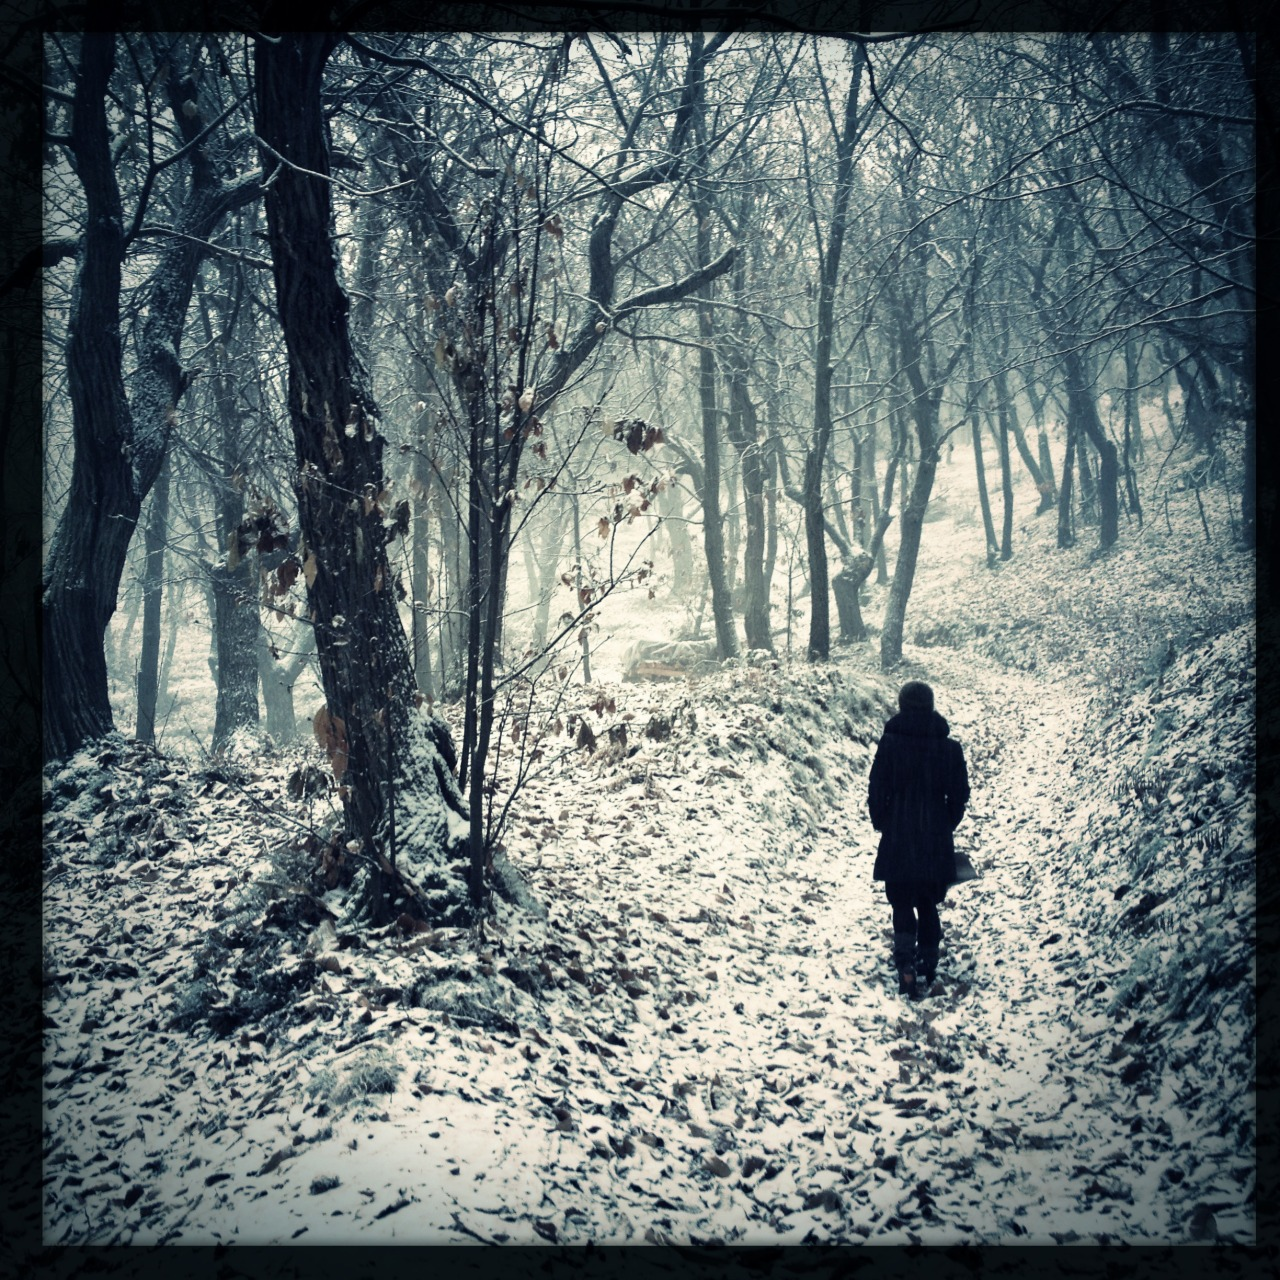 In the forest, while snowing